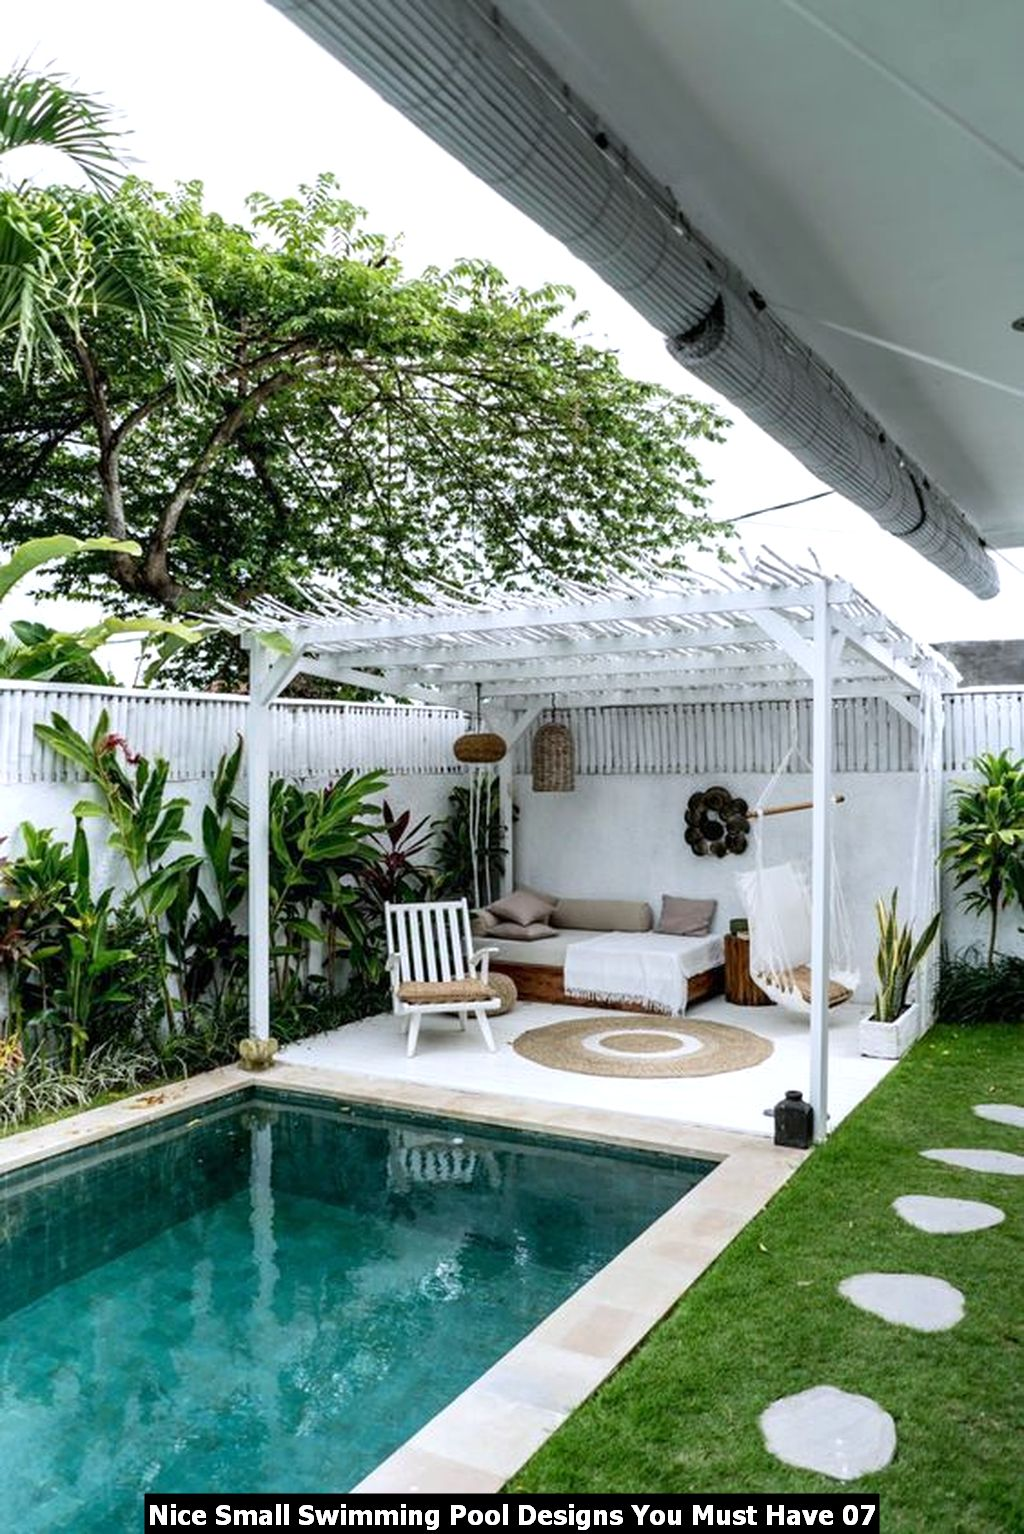 Nice Small Swimming Pool Designs You Must Have 07